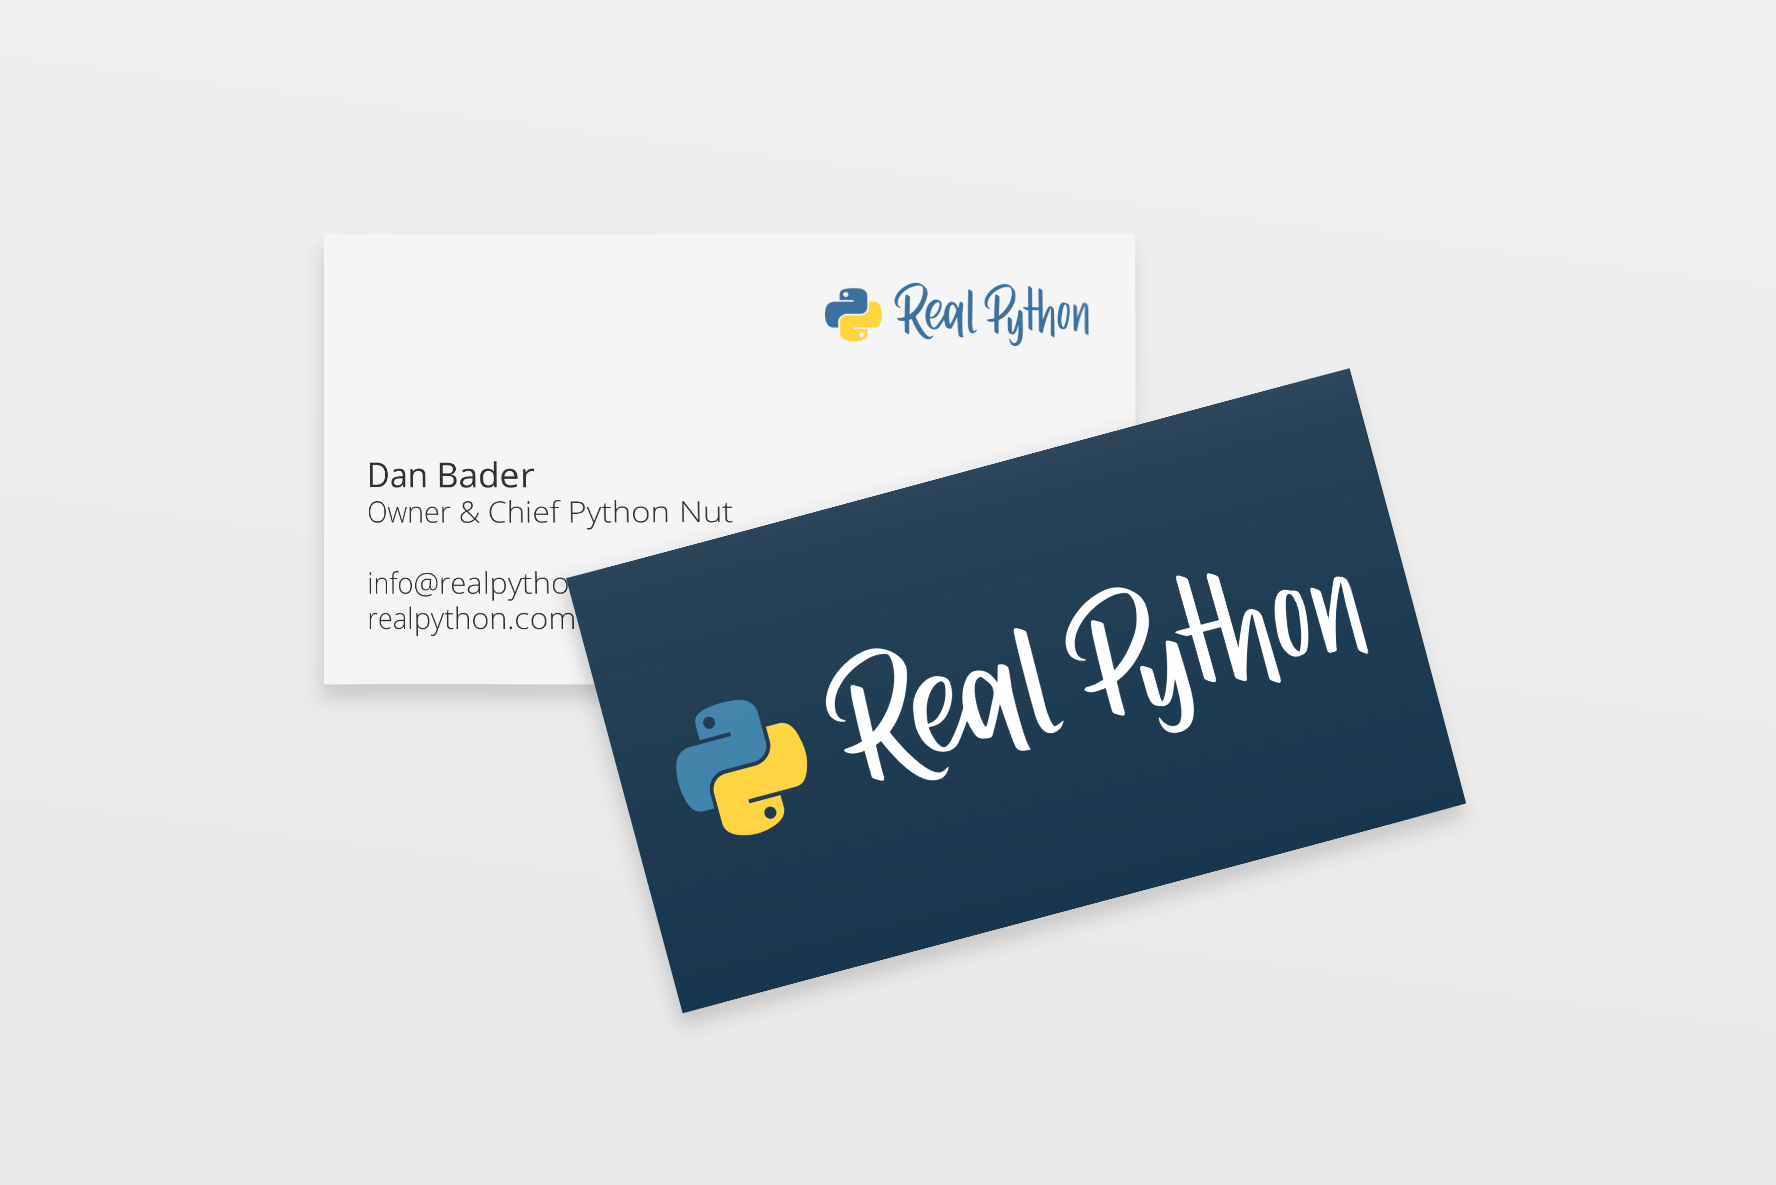 logo redesign business card design